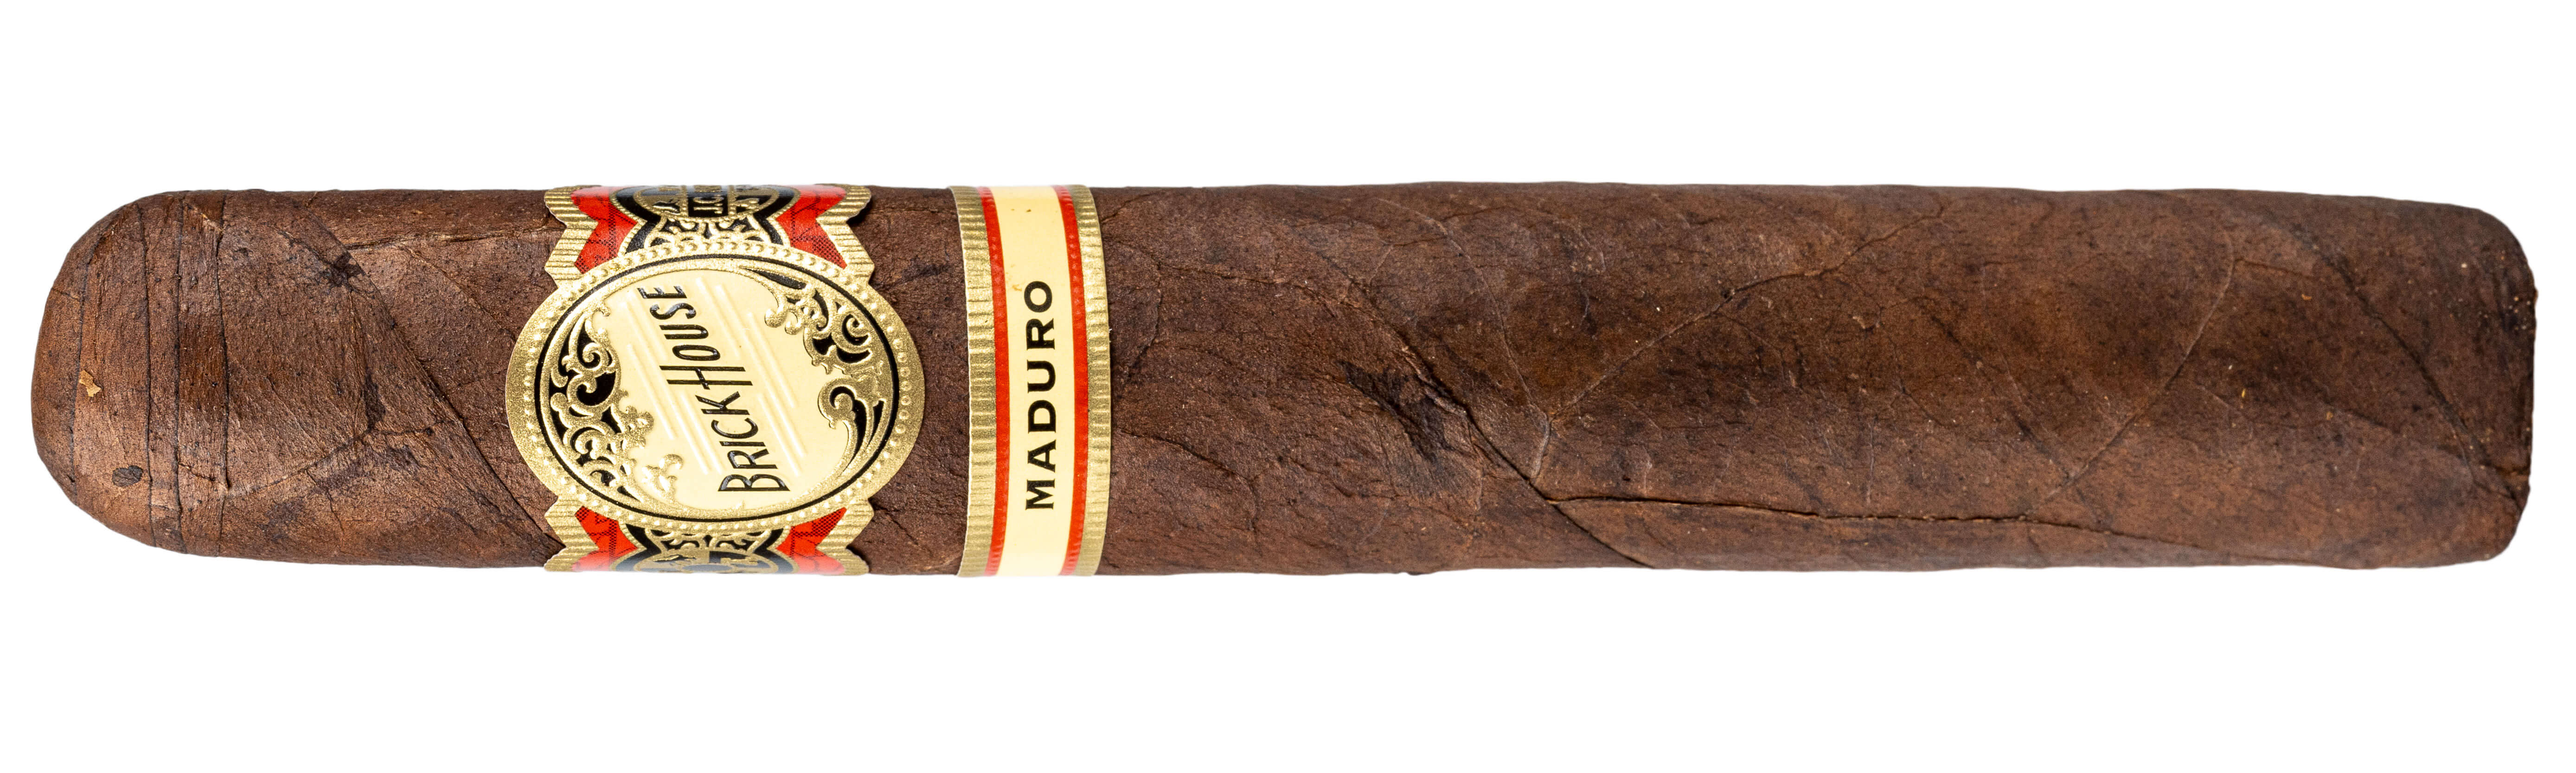 Blind Cigar Review: Brick House | Maduro Mighty Mighty